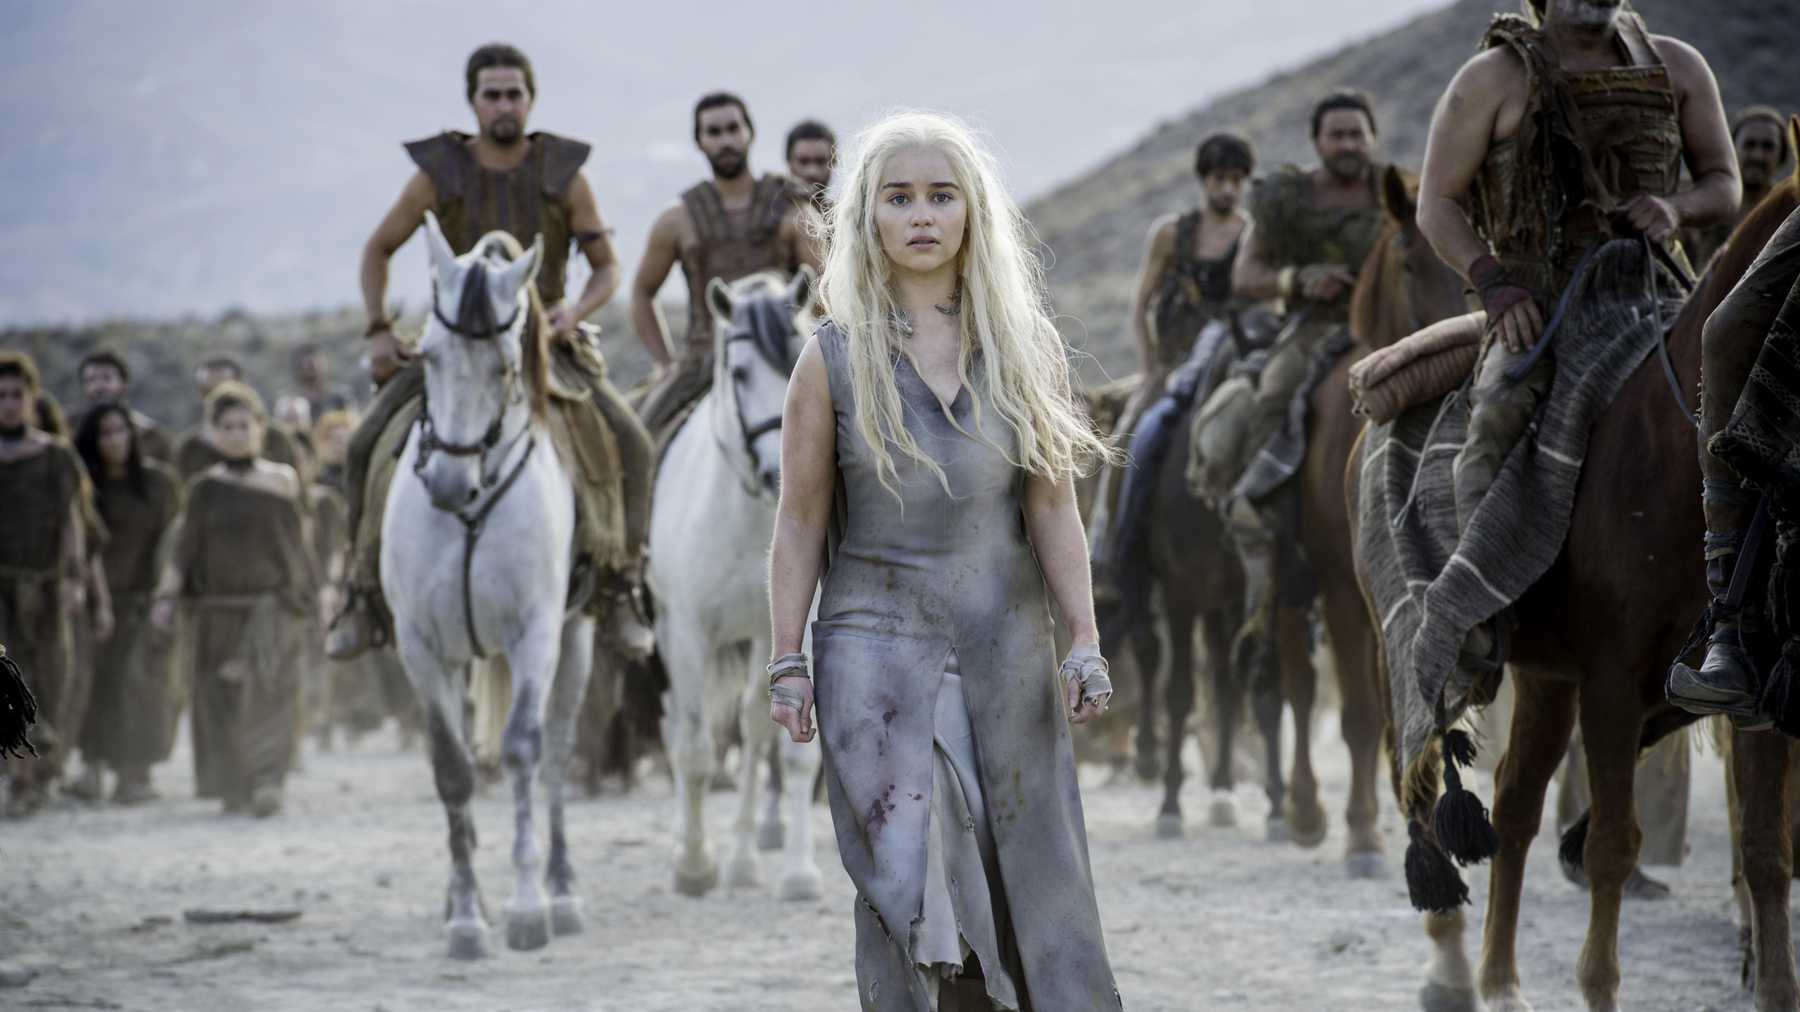 game of thrones Review | TV Show - Empire